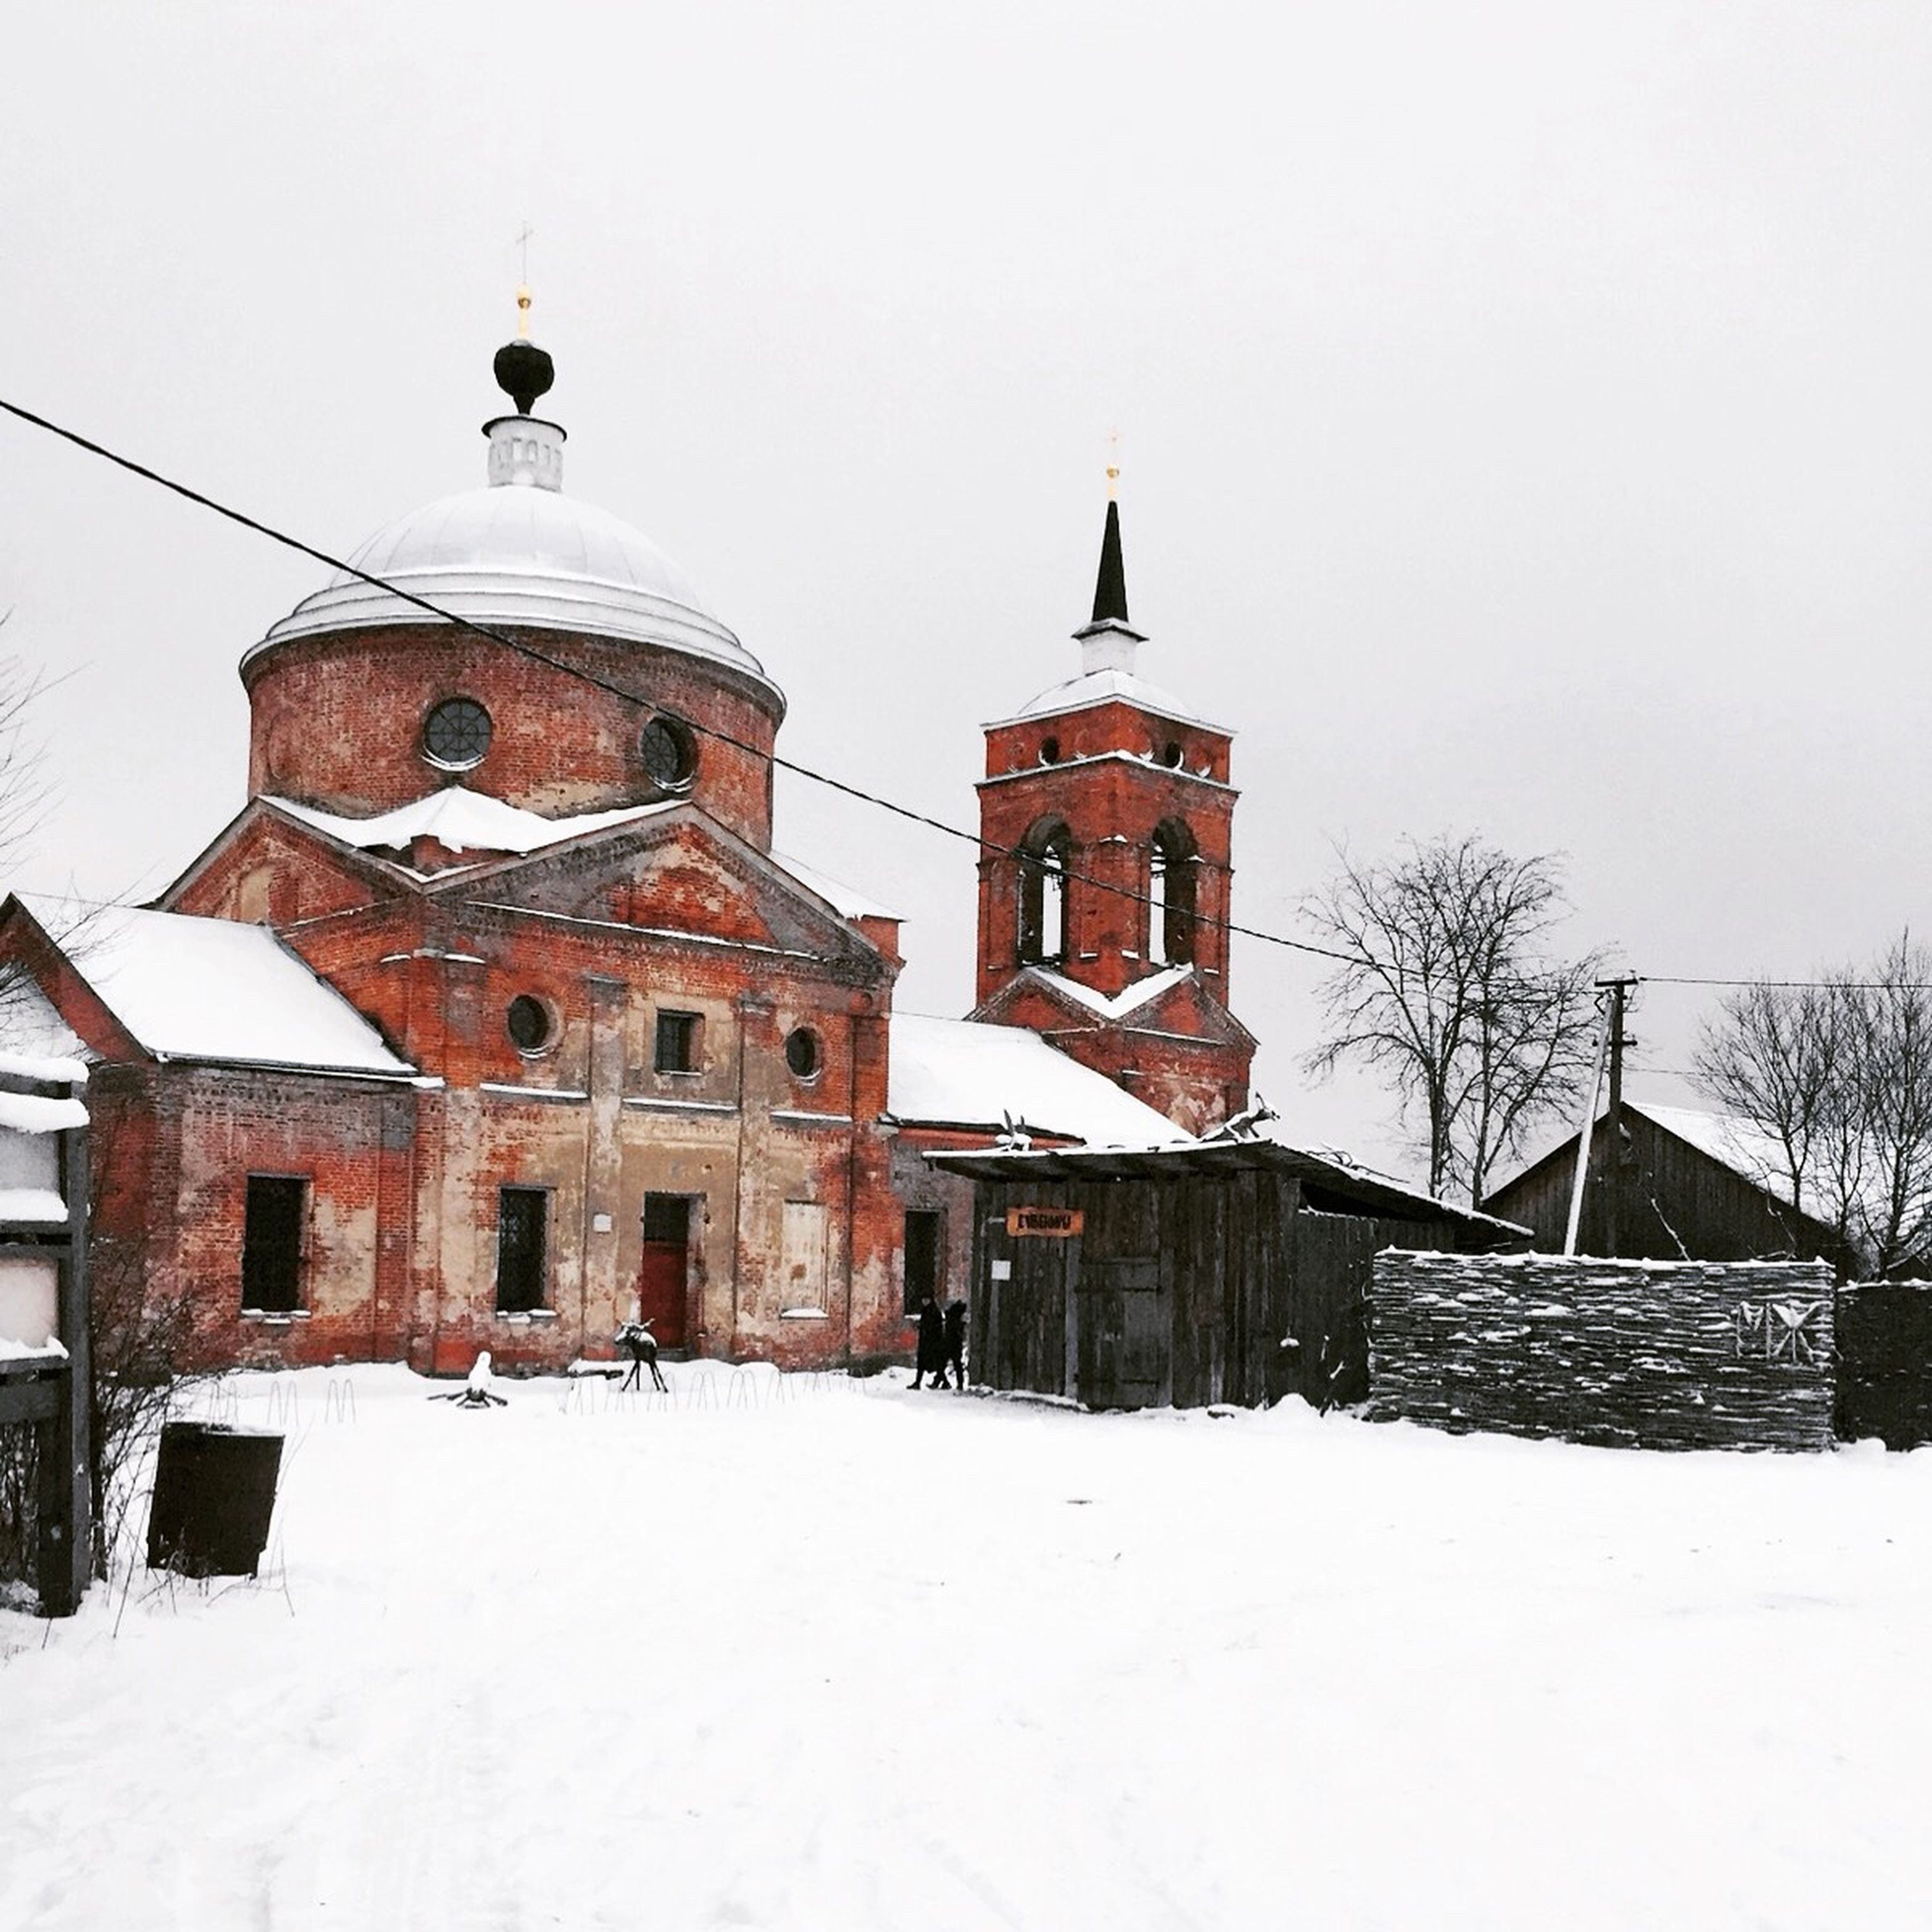 Cold Temperature Snow Winter Architecture Religion Built Structure Building Exterior Weather Spirituality Dome Nature No People Frozen Snowing Outdoors Place Of Worship Clear Sky Day Travel Destinations Bare Tree